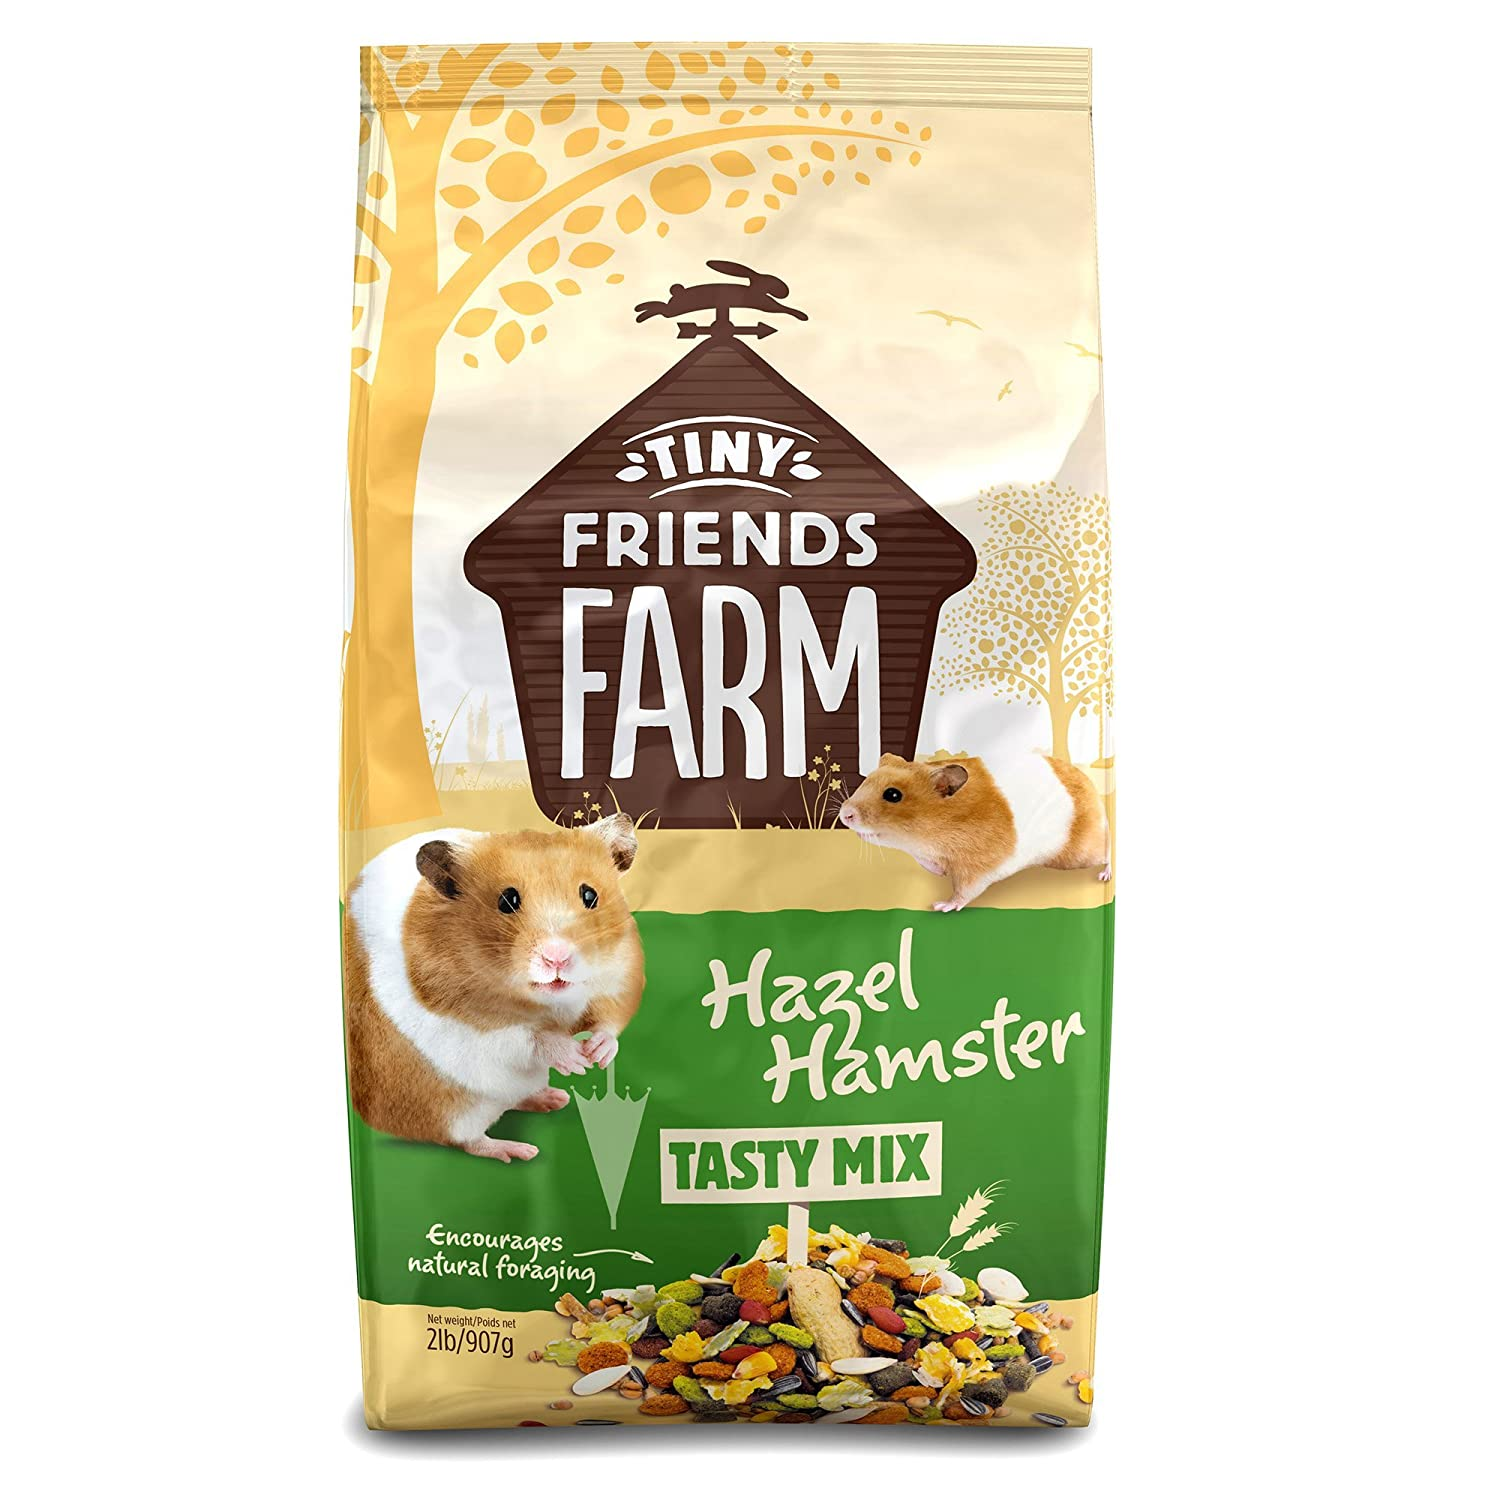 amazon com tiny friends farm hazel hamster tasty mix 2 pounds